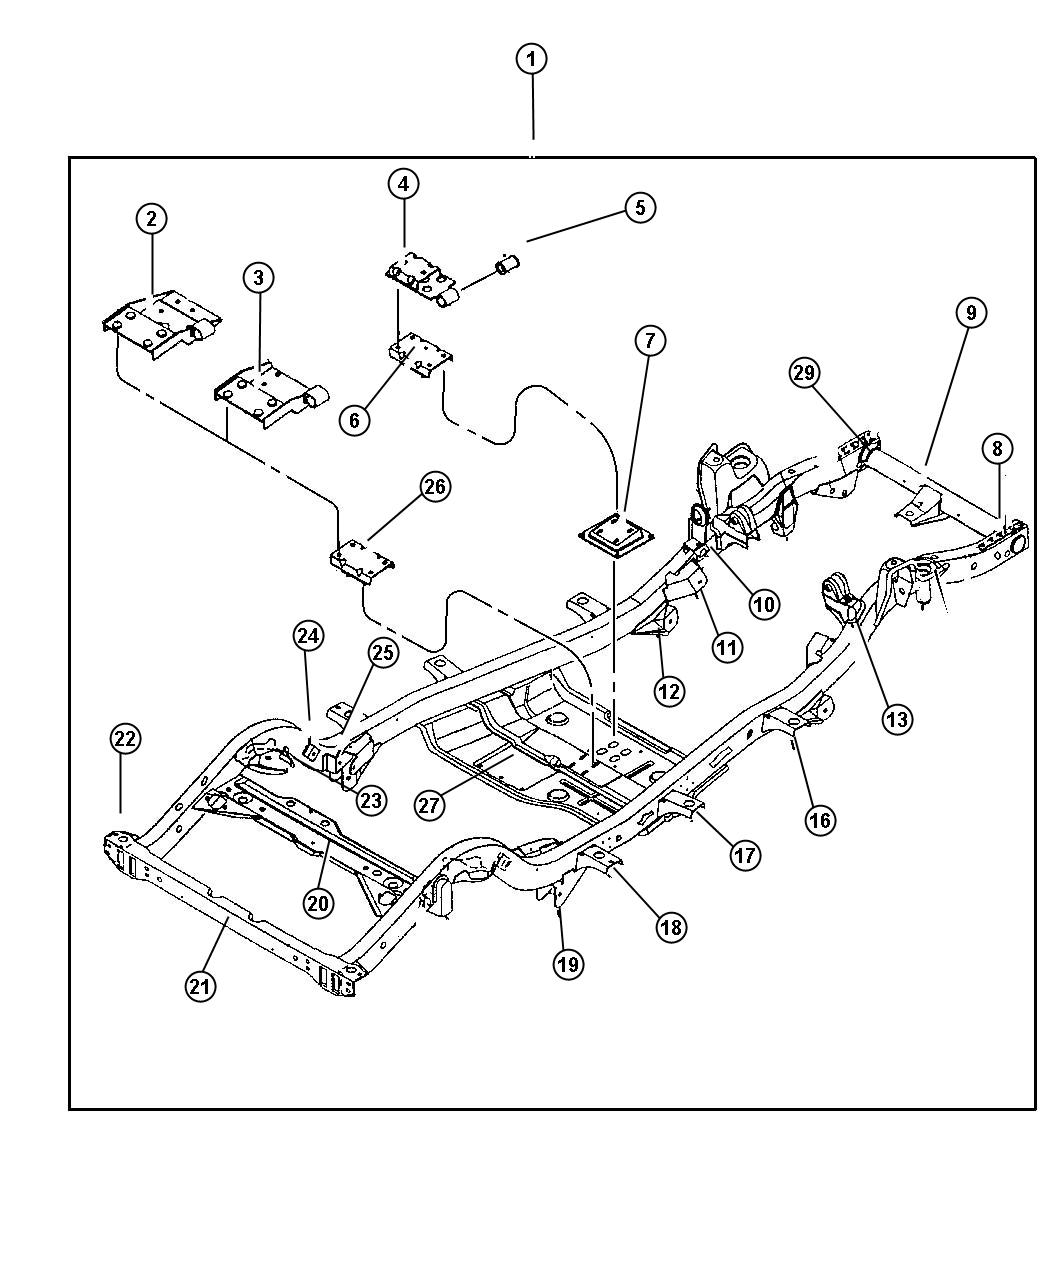 Jeep Wrangler Frame  Chassis   Engines